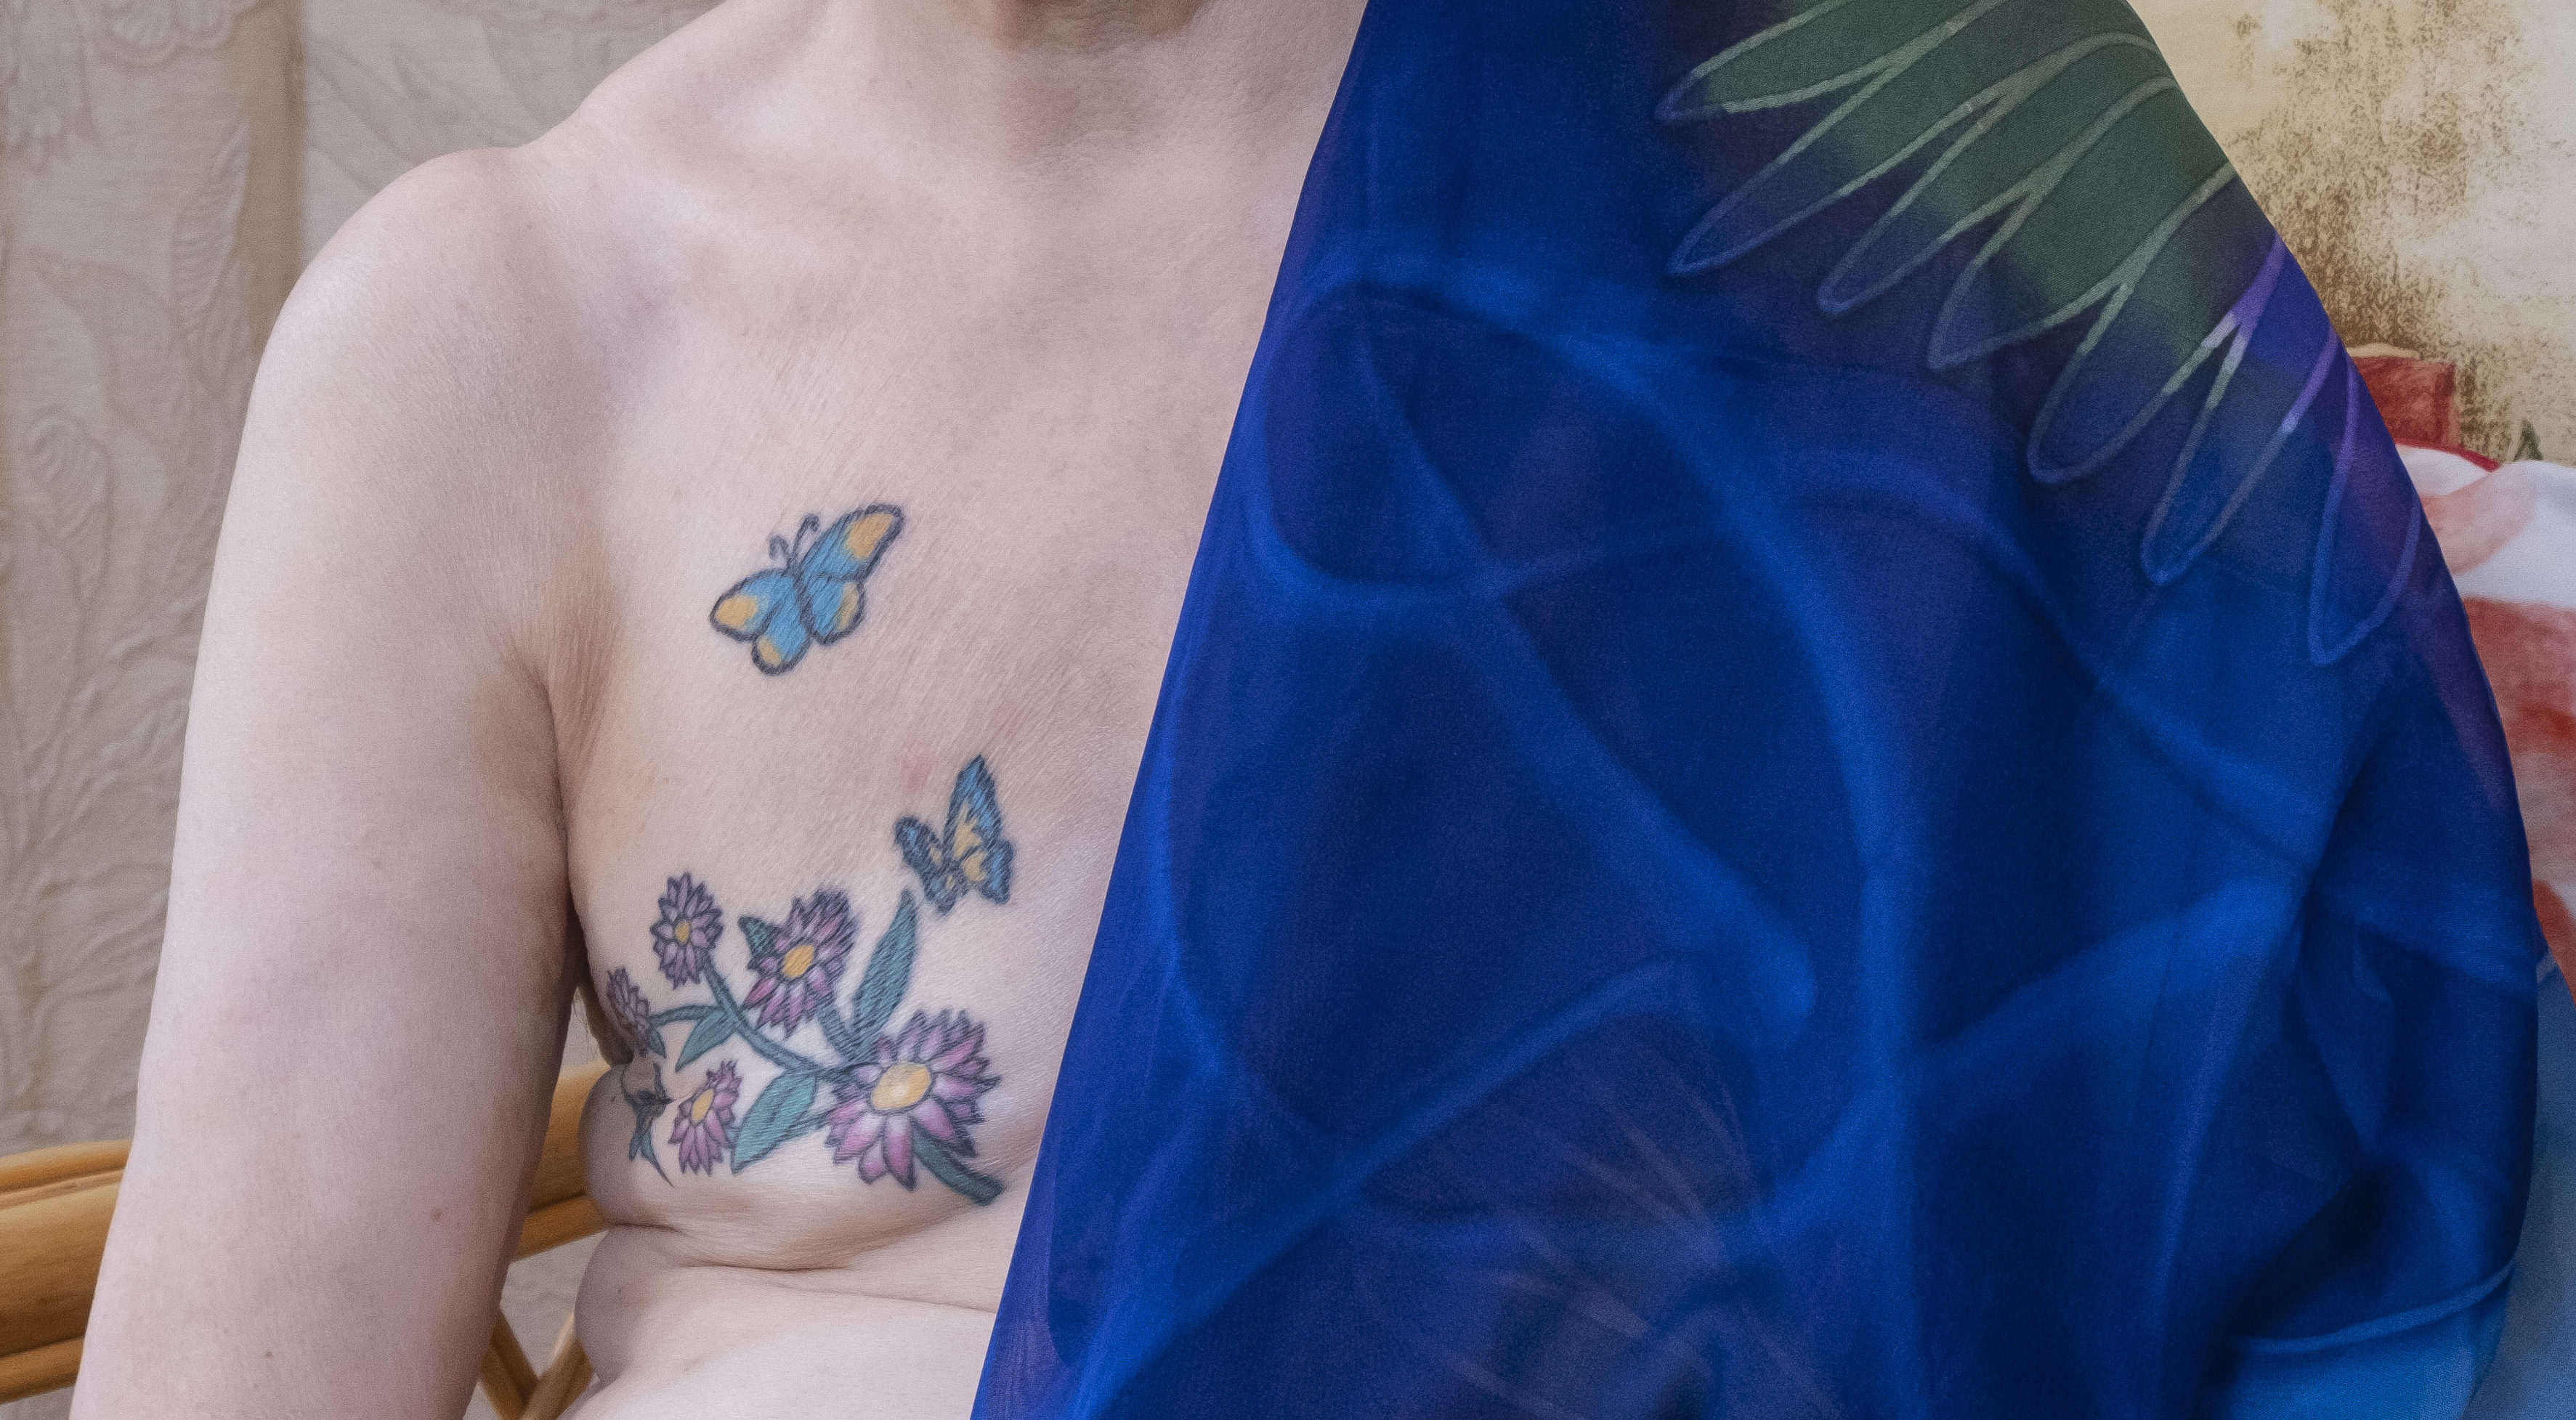 Liz Howley's tattoo over her mastectomy scar. (Tina Norris).